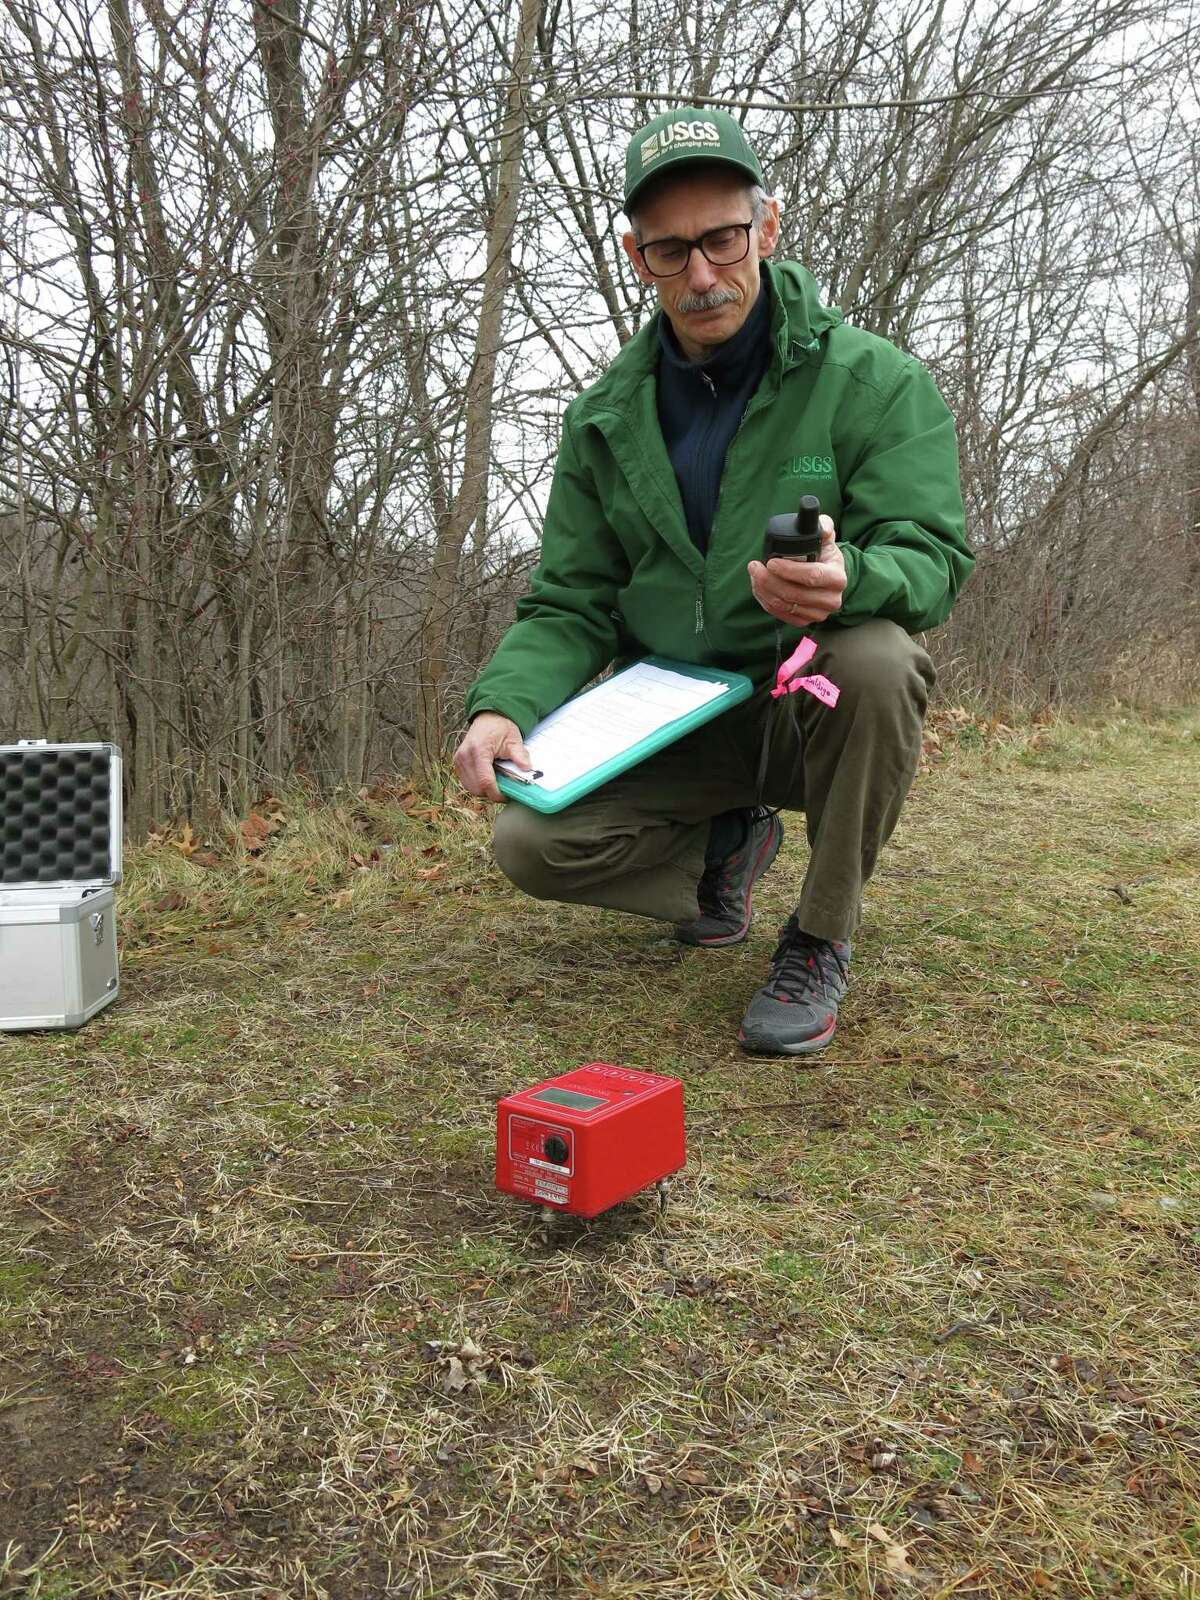 Paul Heisig, a hydrologist with the U.S. Geological Survey, uses a portable seismic unit to measure the underground aquifer at Moreau Lake State Park. (U.S. Geological Survey)